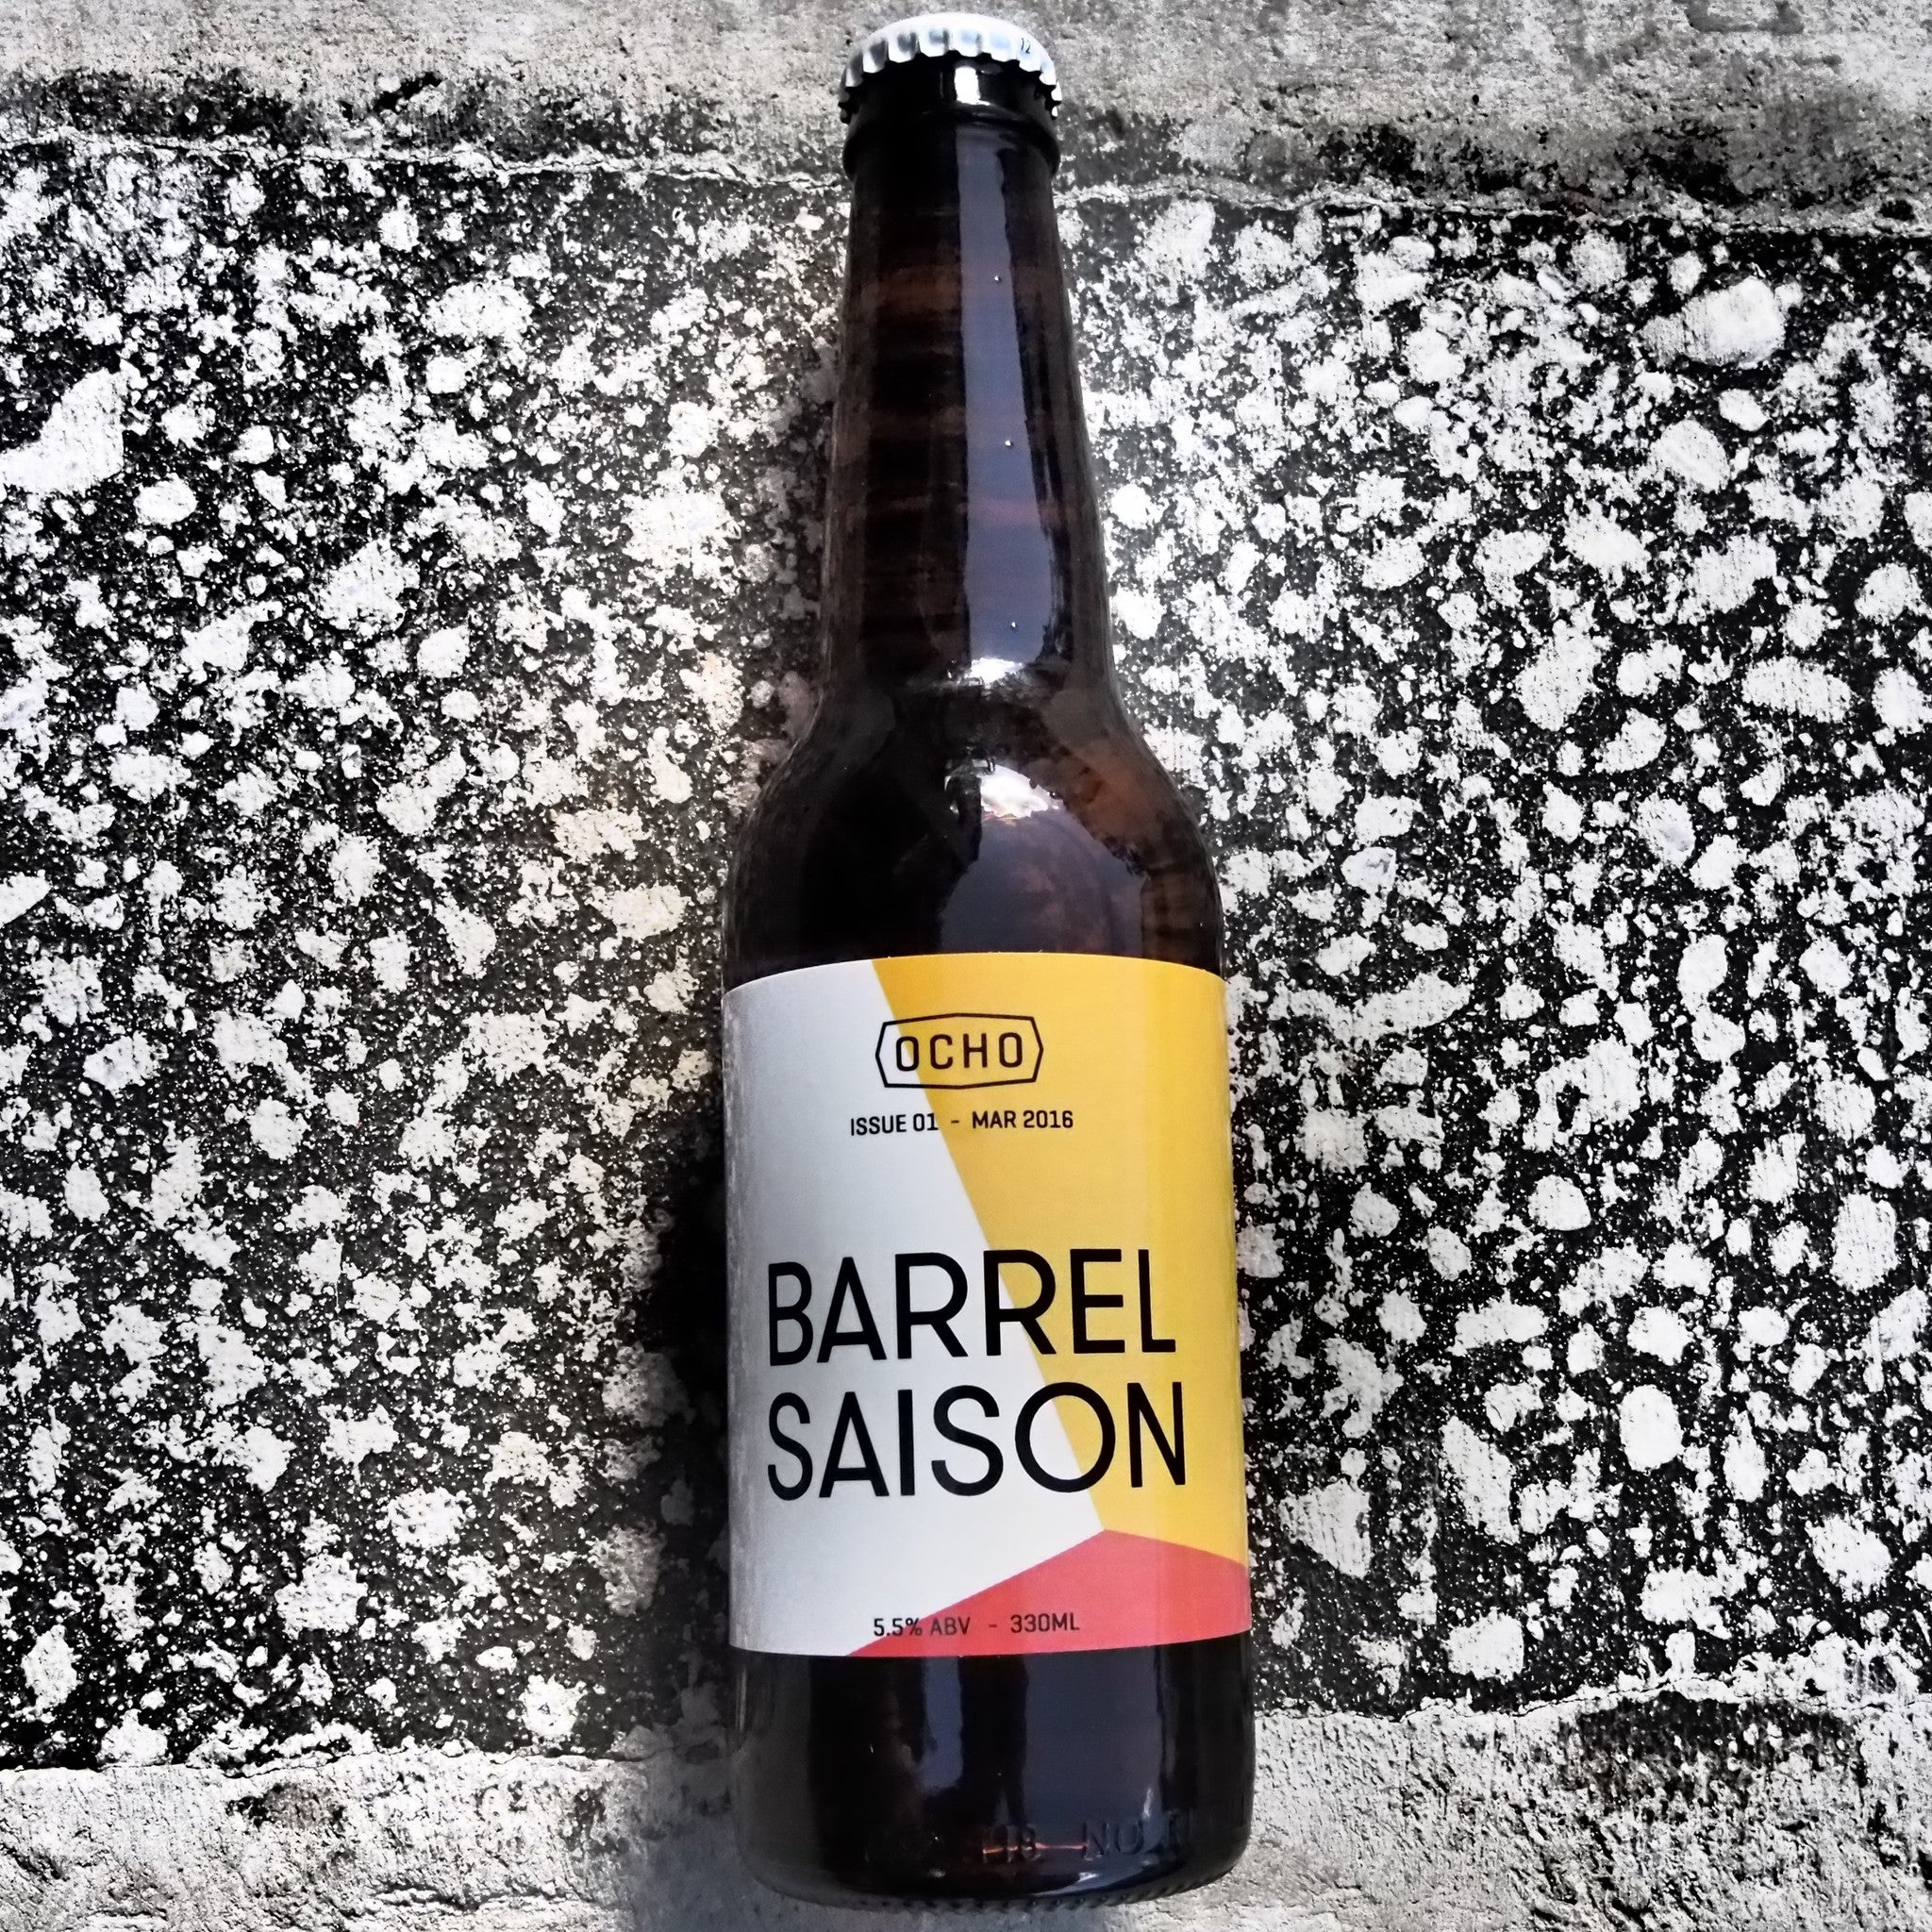 Barrel Saison